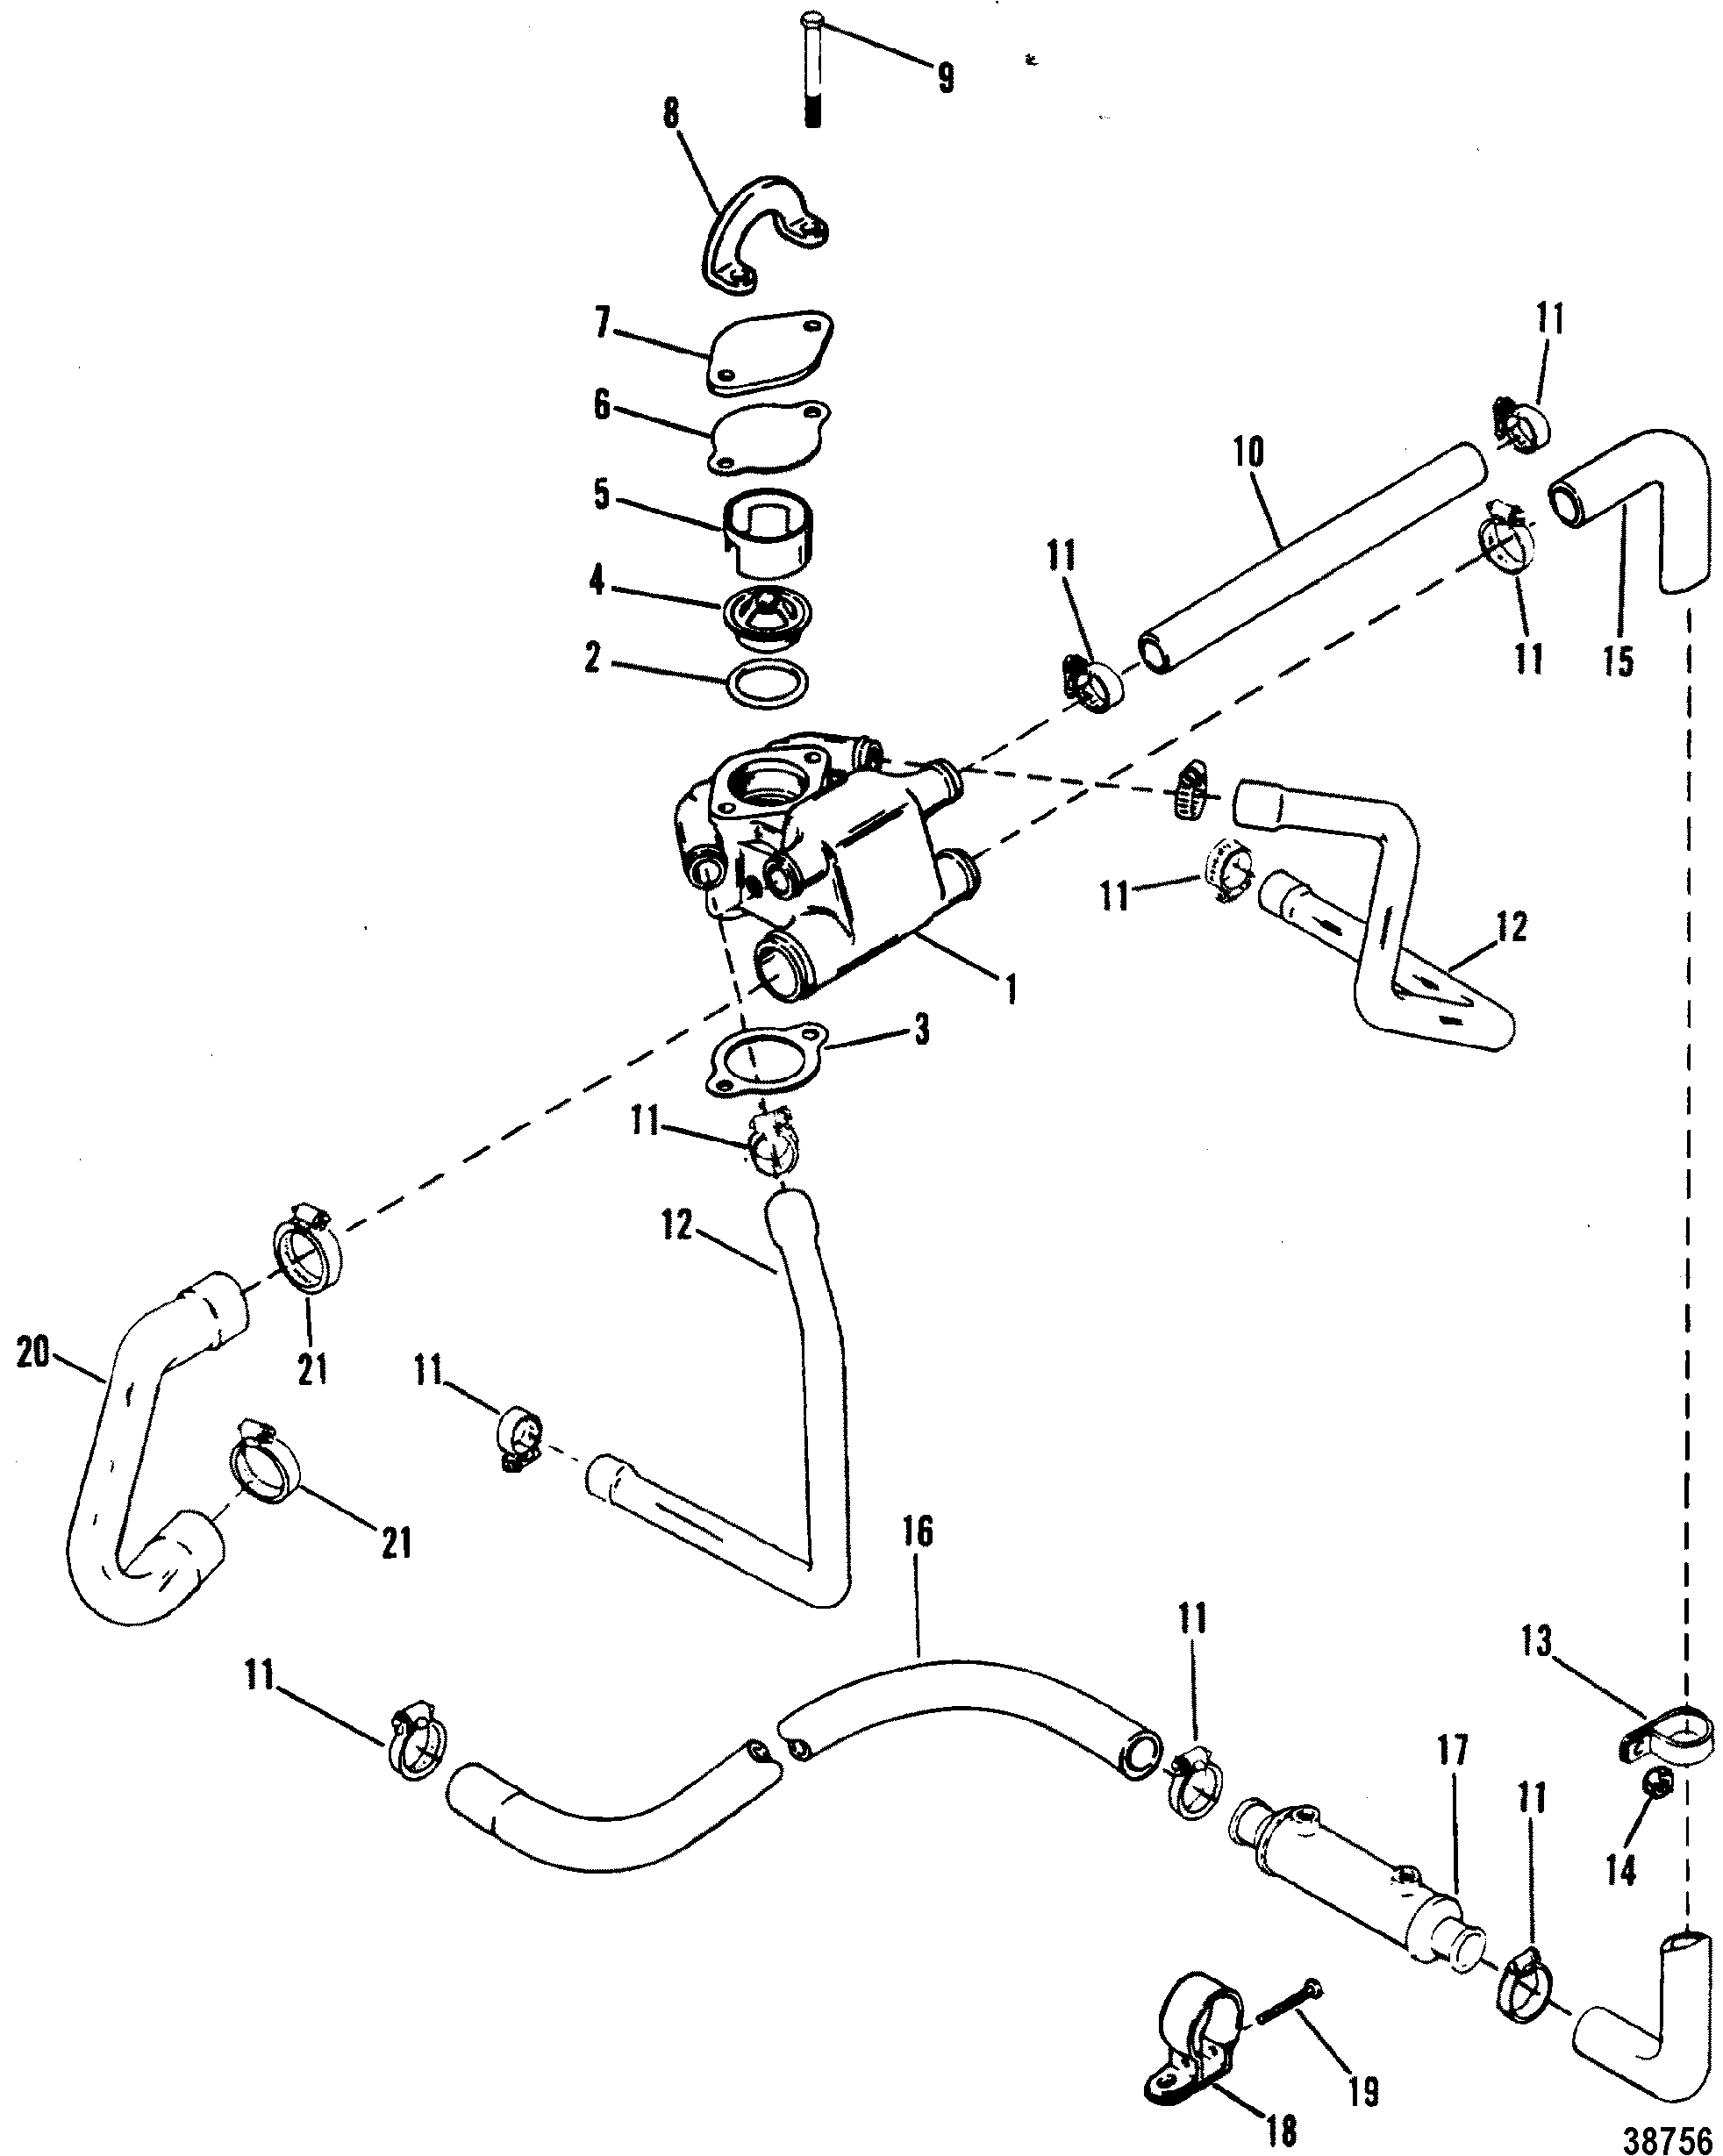 Standard Cooling System Design I For Mercruiser 4 3l 4 3lx